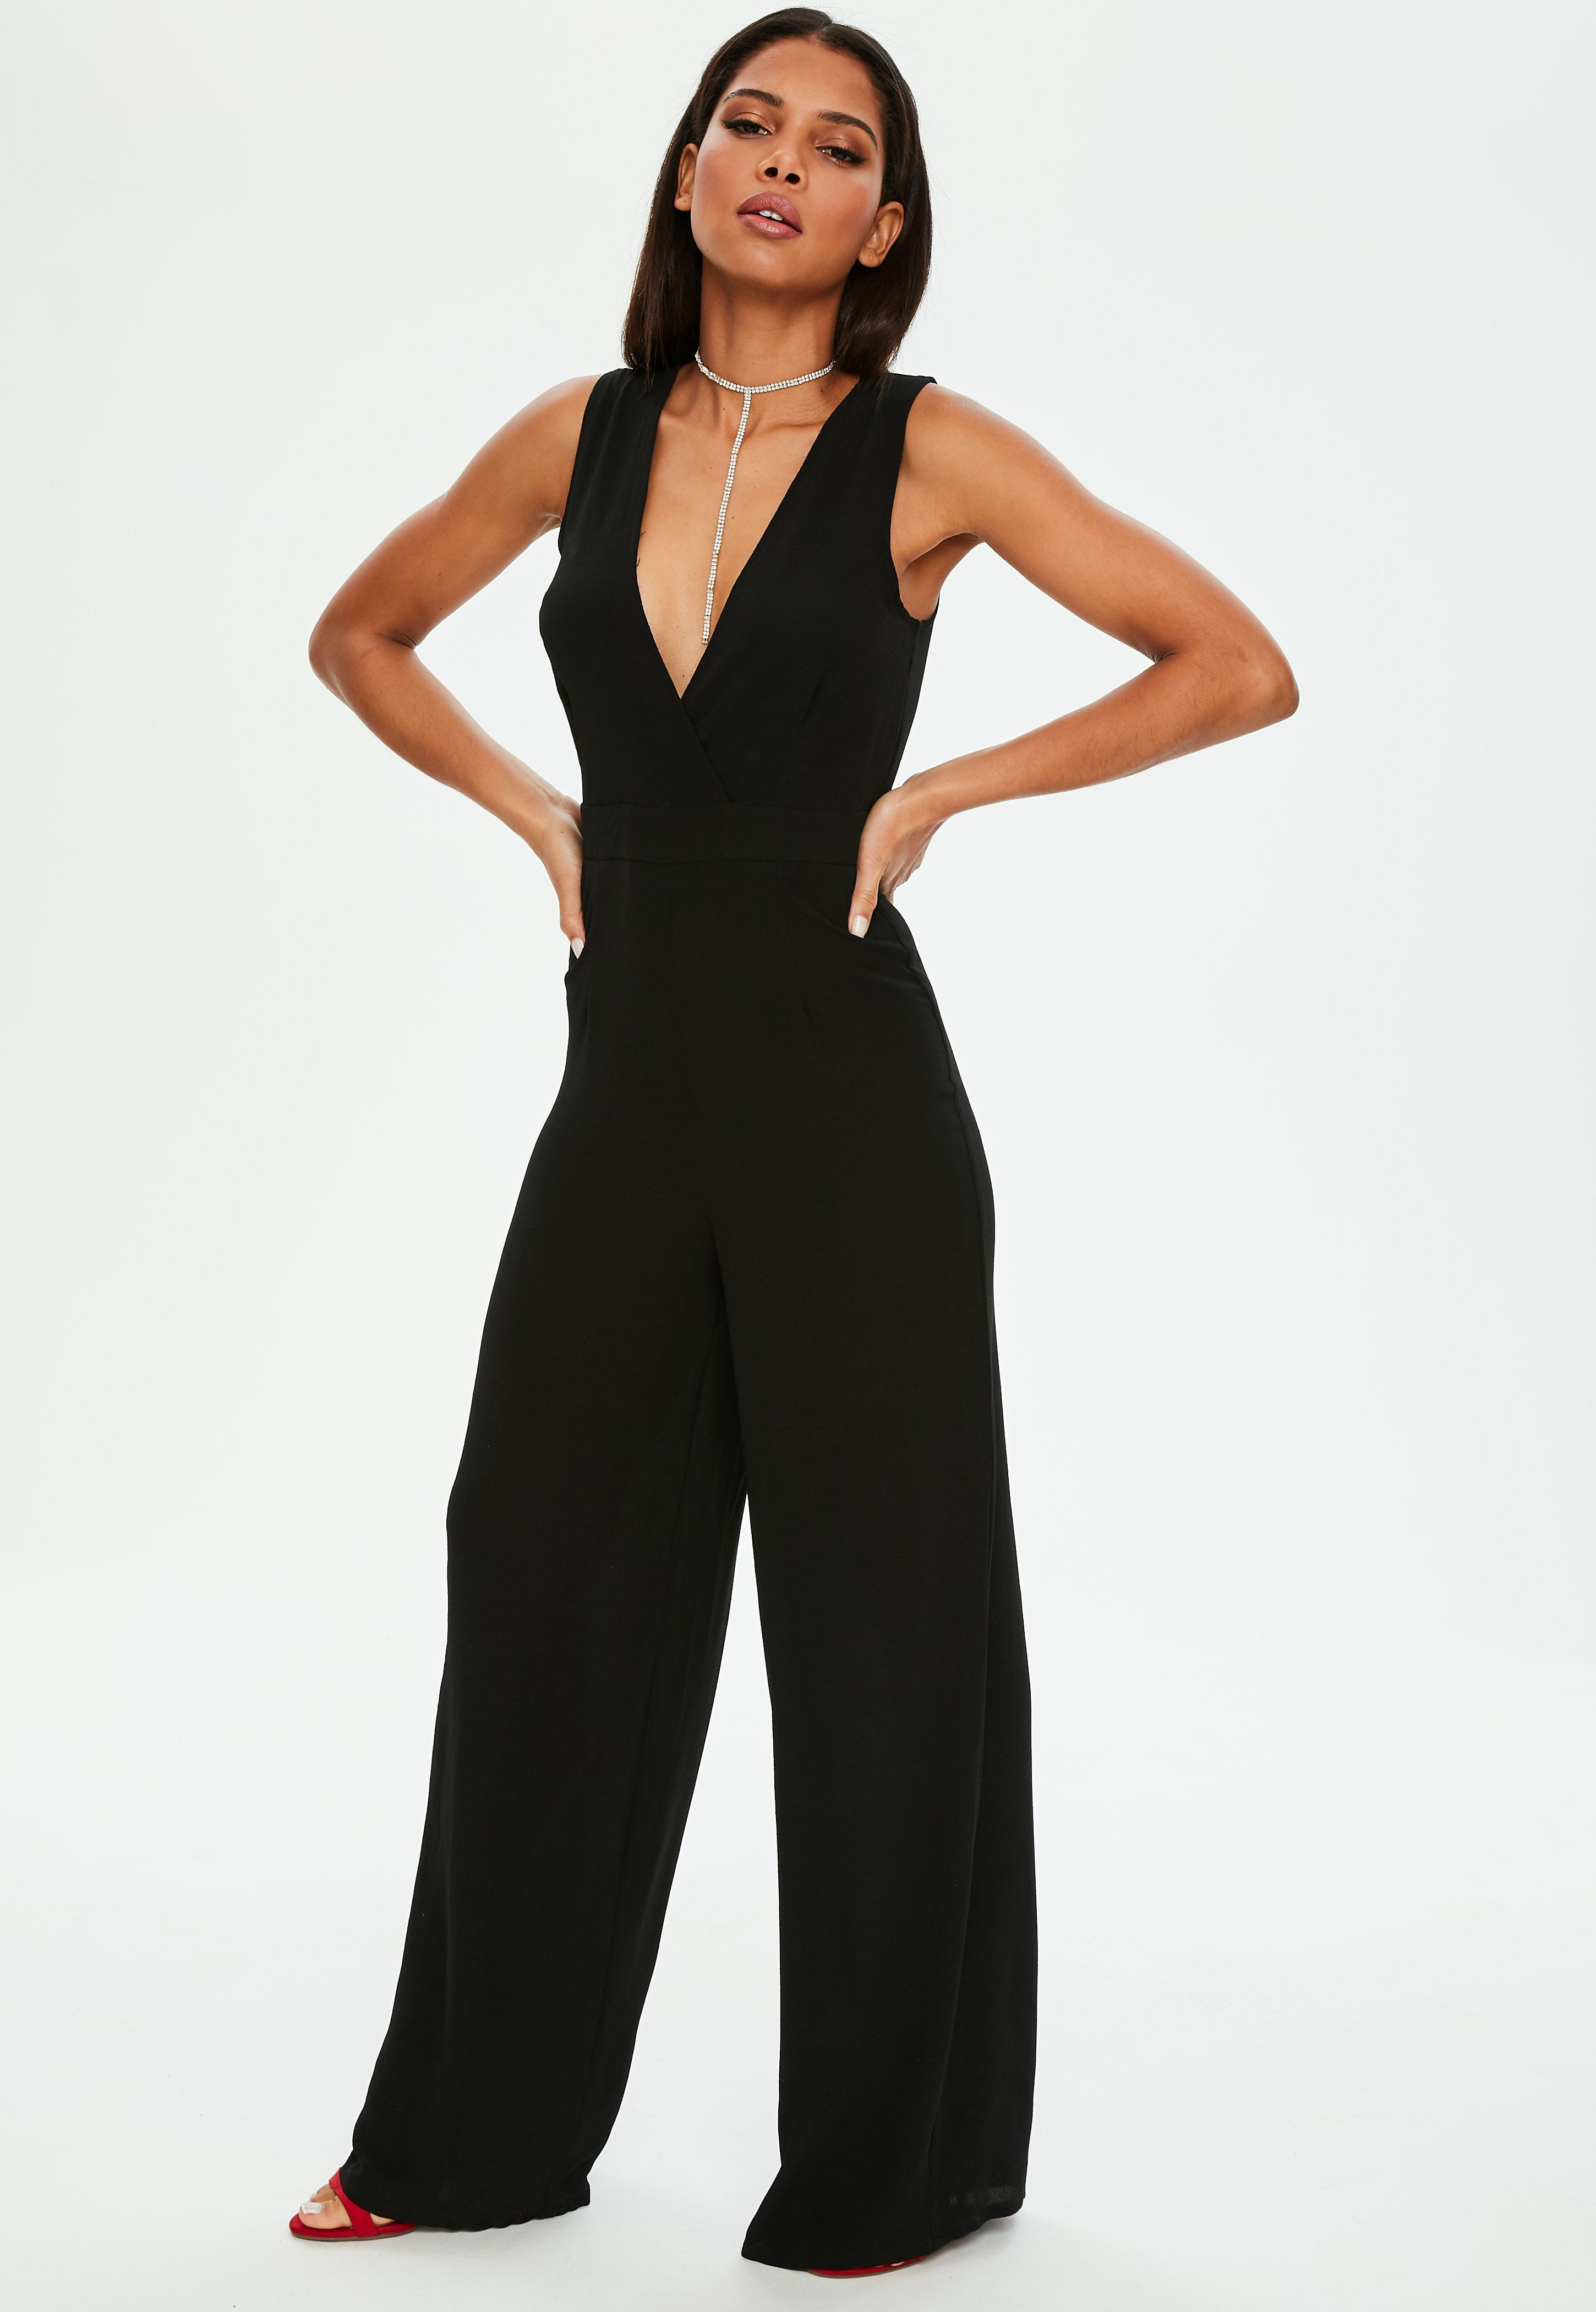 ad8c5916fd56 Lyst - Missguided Black Wrap Front Sleeveless Wide Leg Jumpsuit in Black